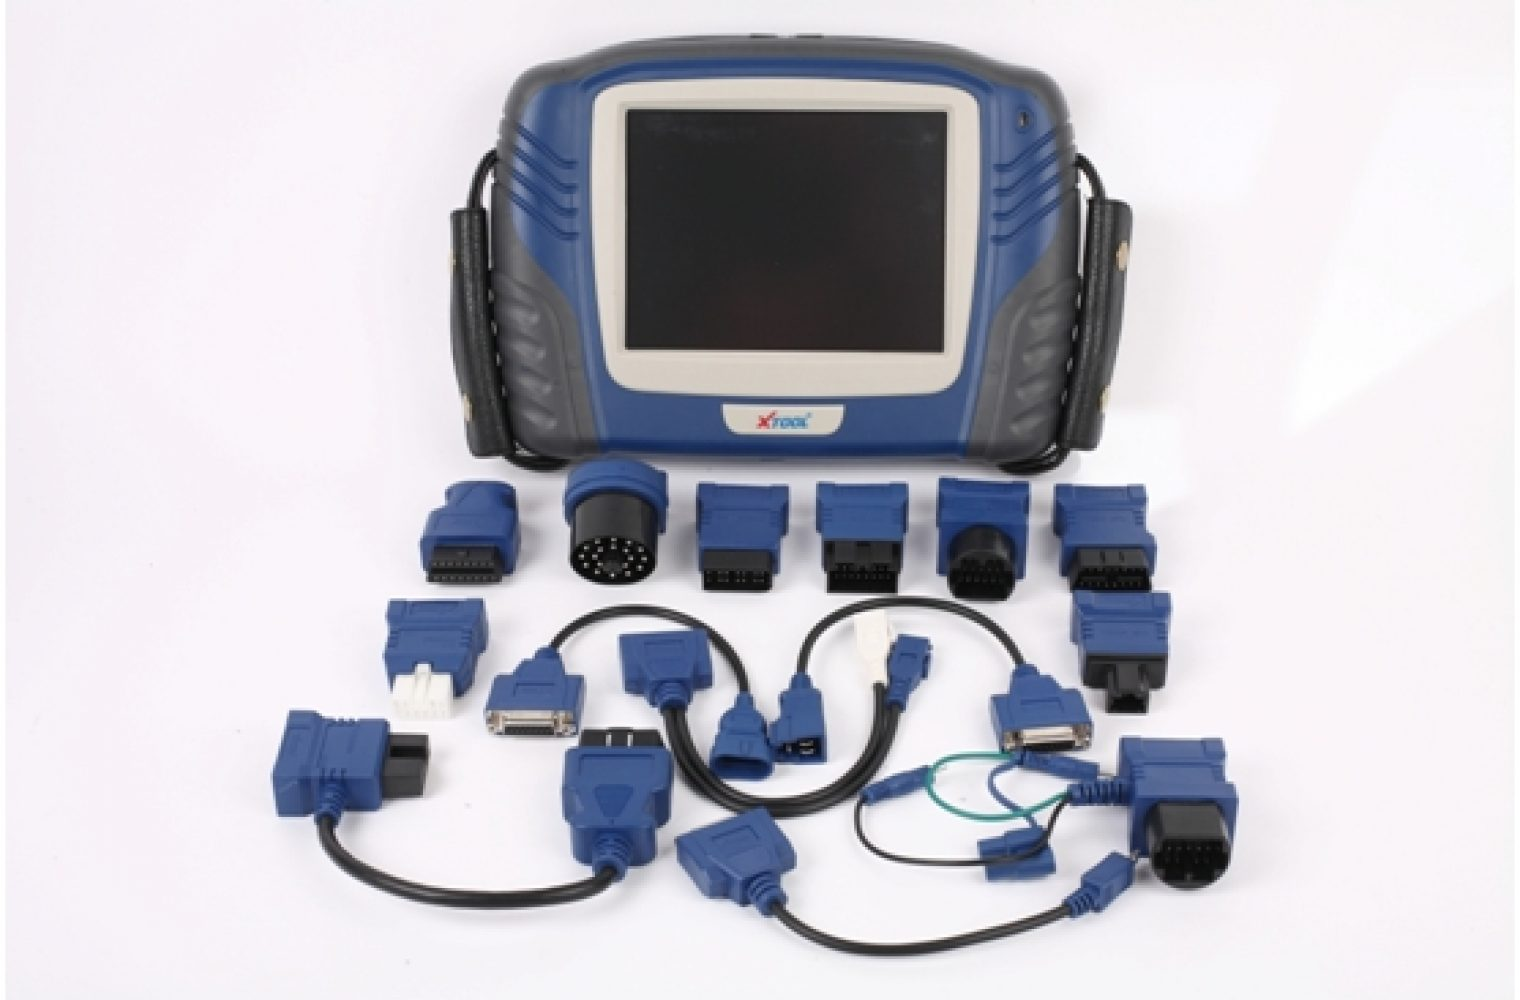 Amazing XTOOL PS2 GDS scan tool deal - £895+VAT 2 years